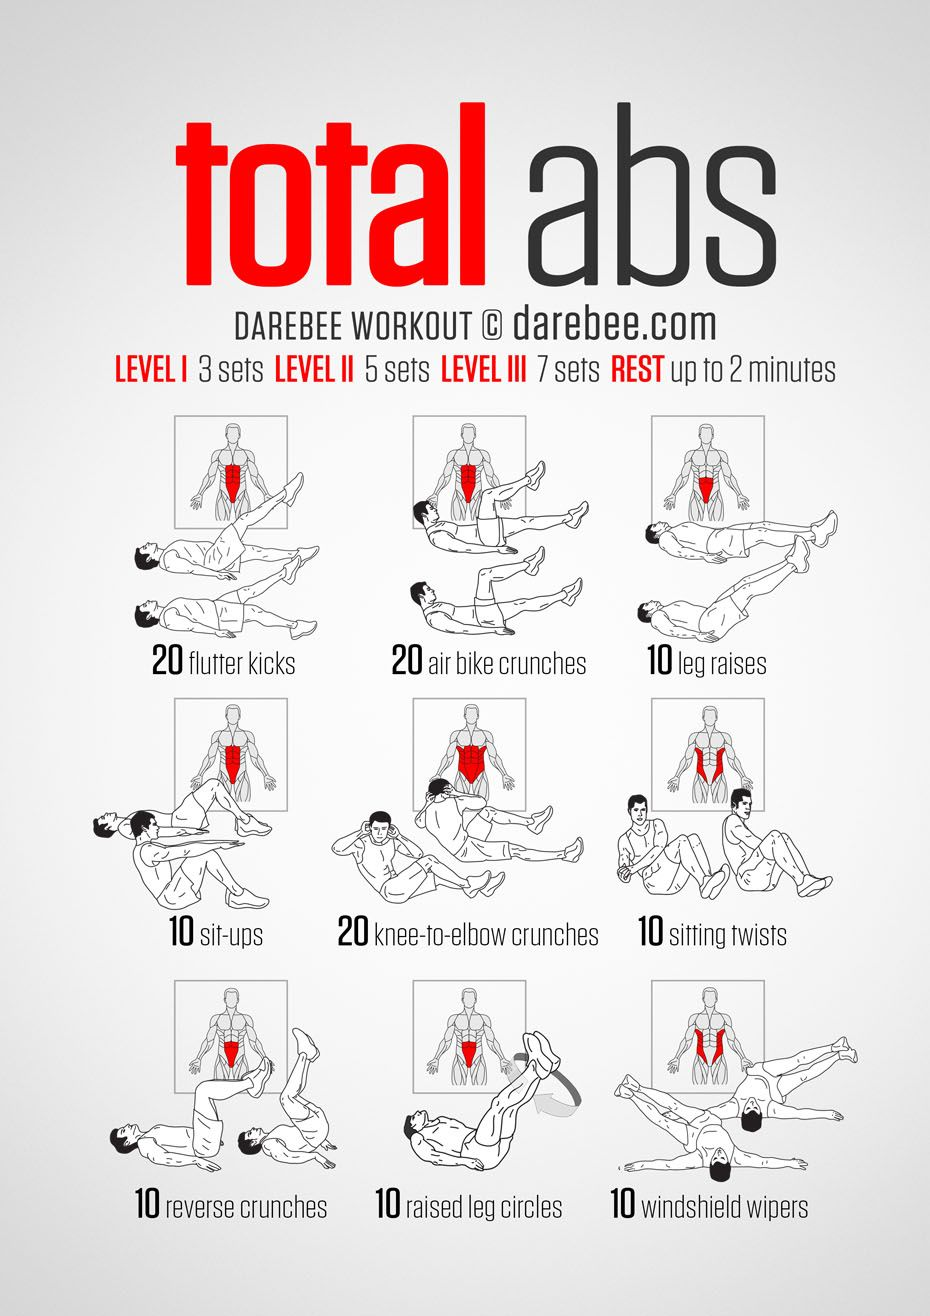 Total Abs Workout   Running   Pinterest   Total abs ...